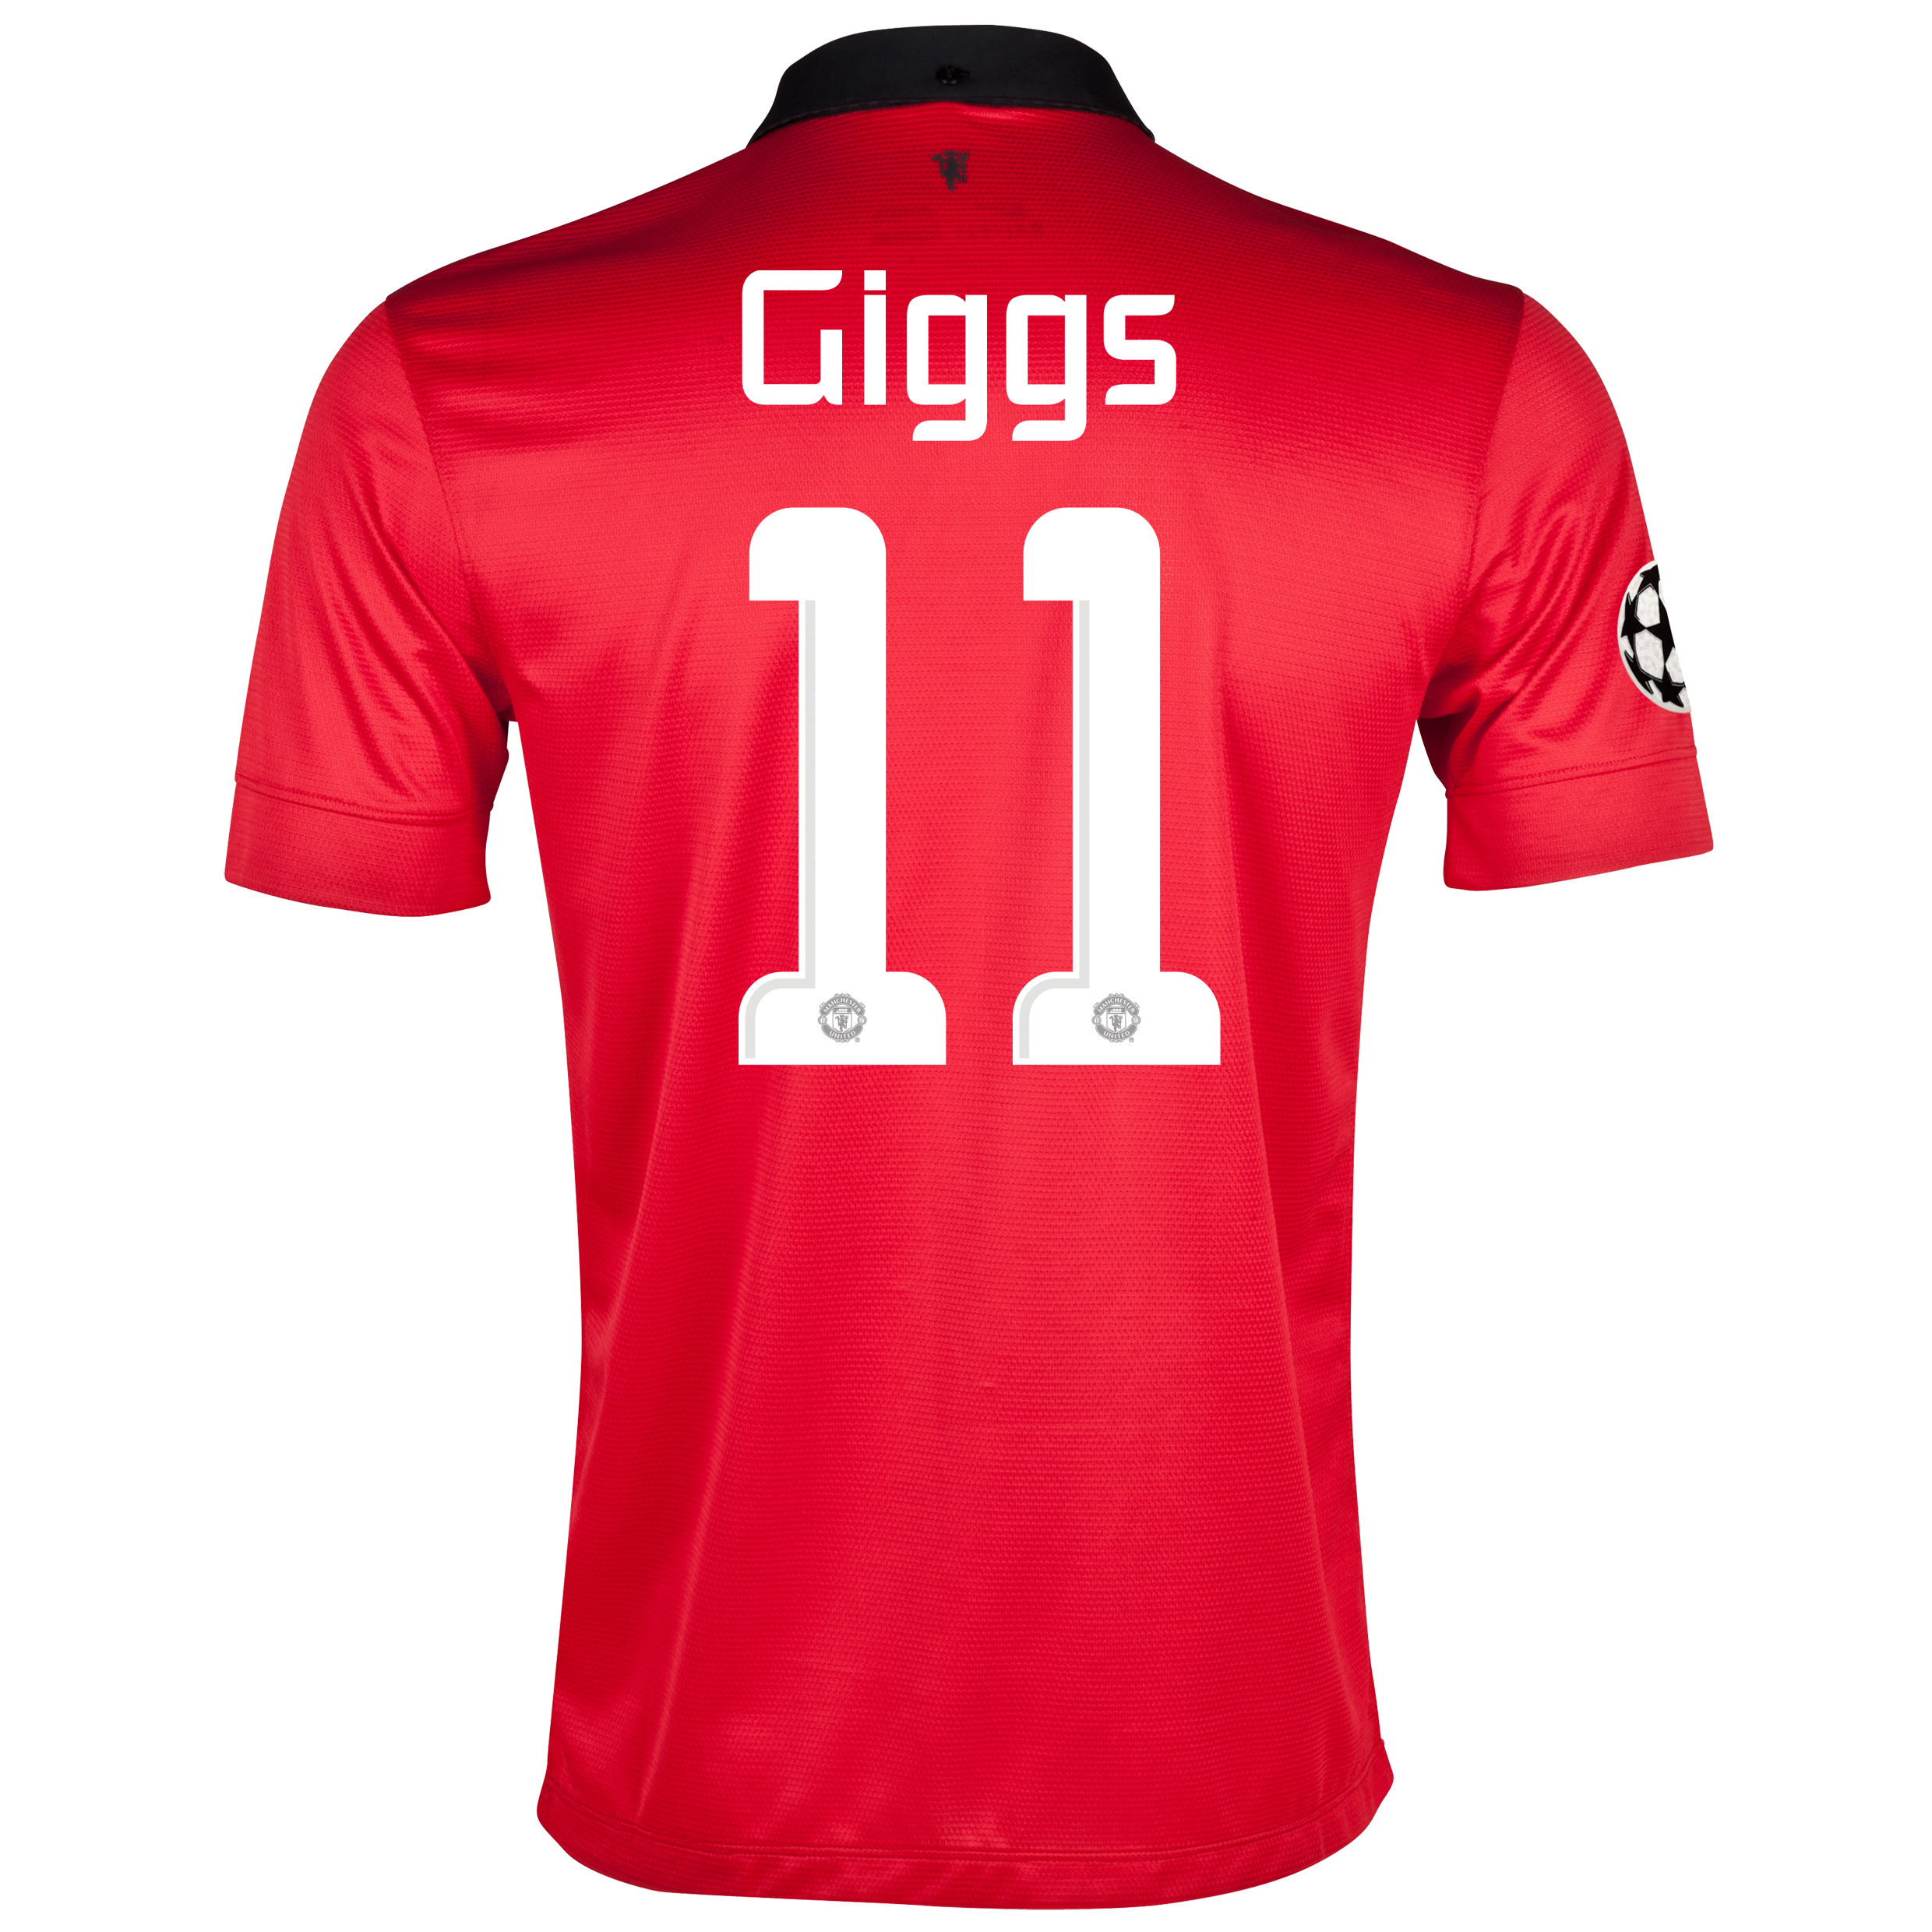 Manchester United UEFA Champions League Home Shirt 2013/14 - Kids with Giggs 11 printing